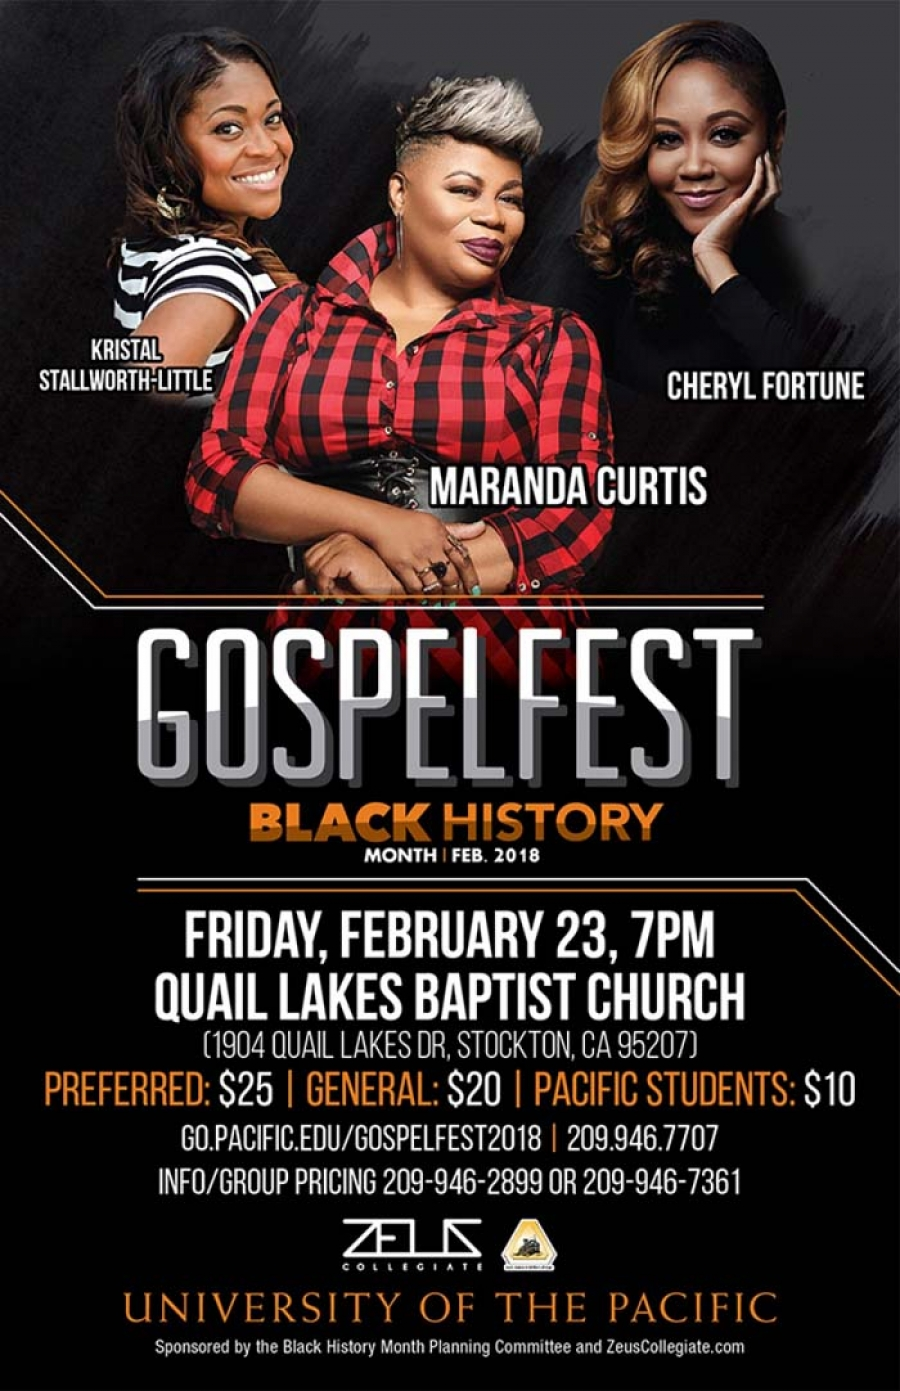 Special group and student rates for GospelFest tonight Fri-2/23